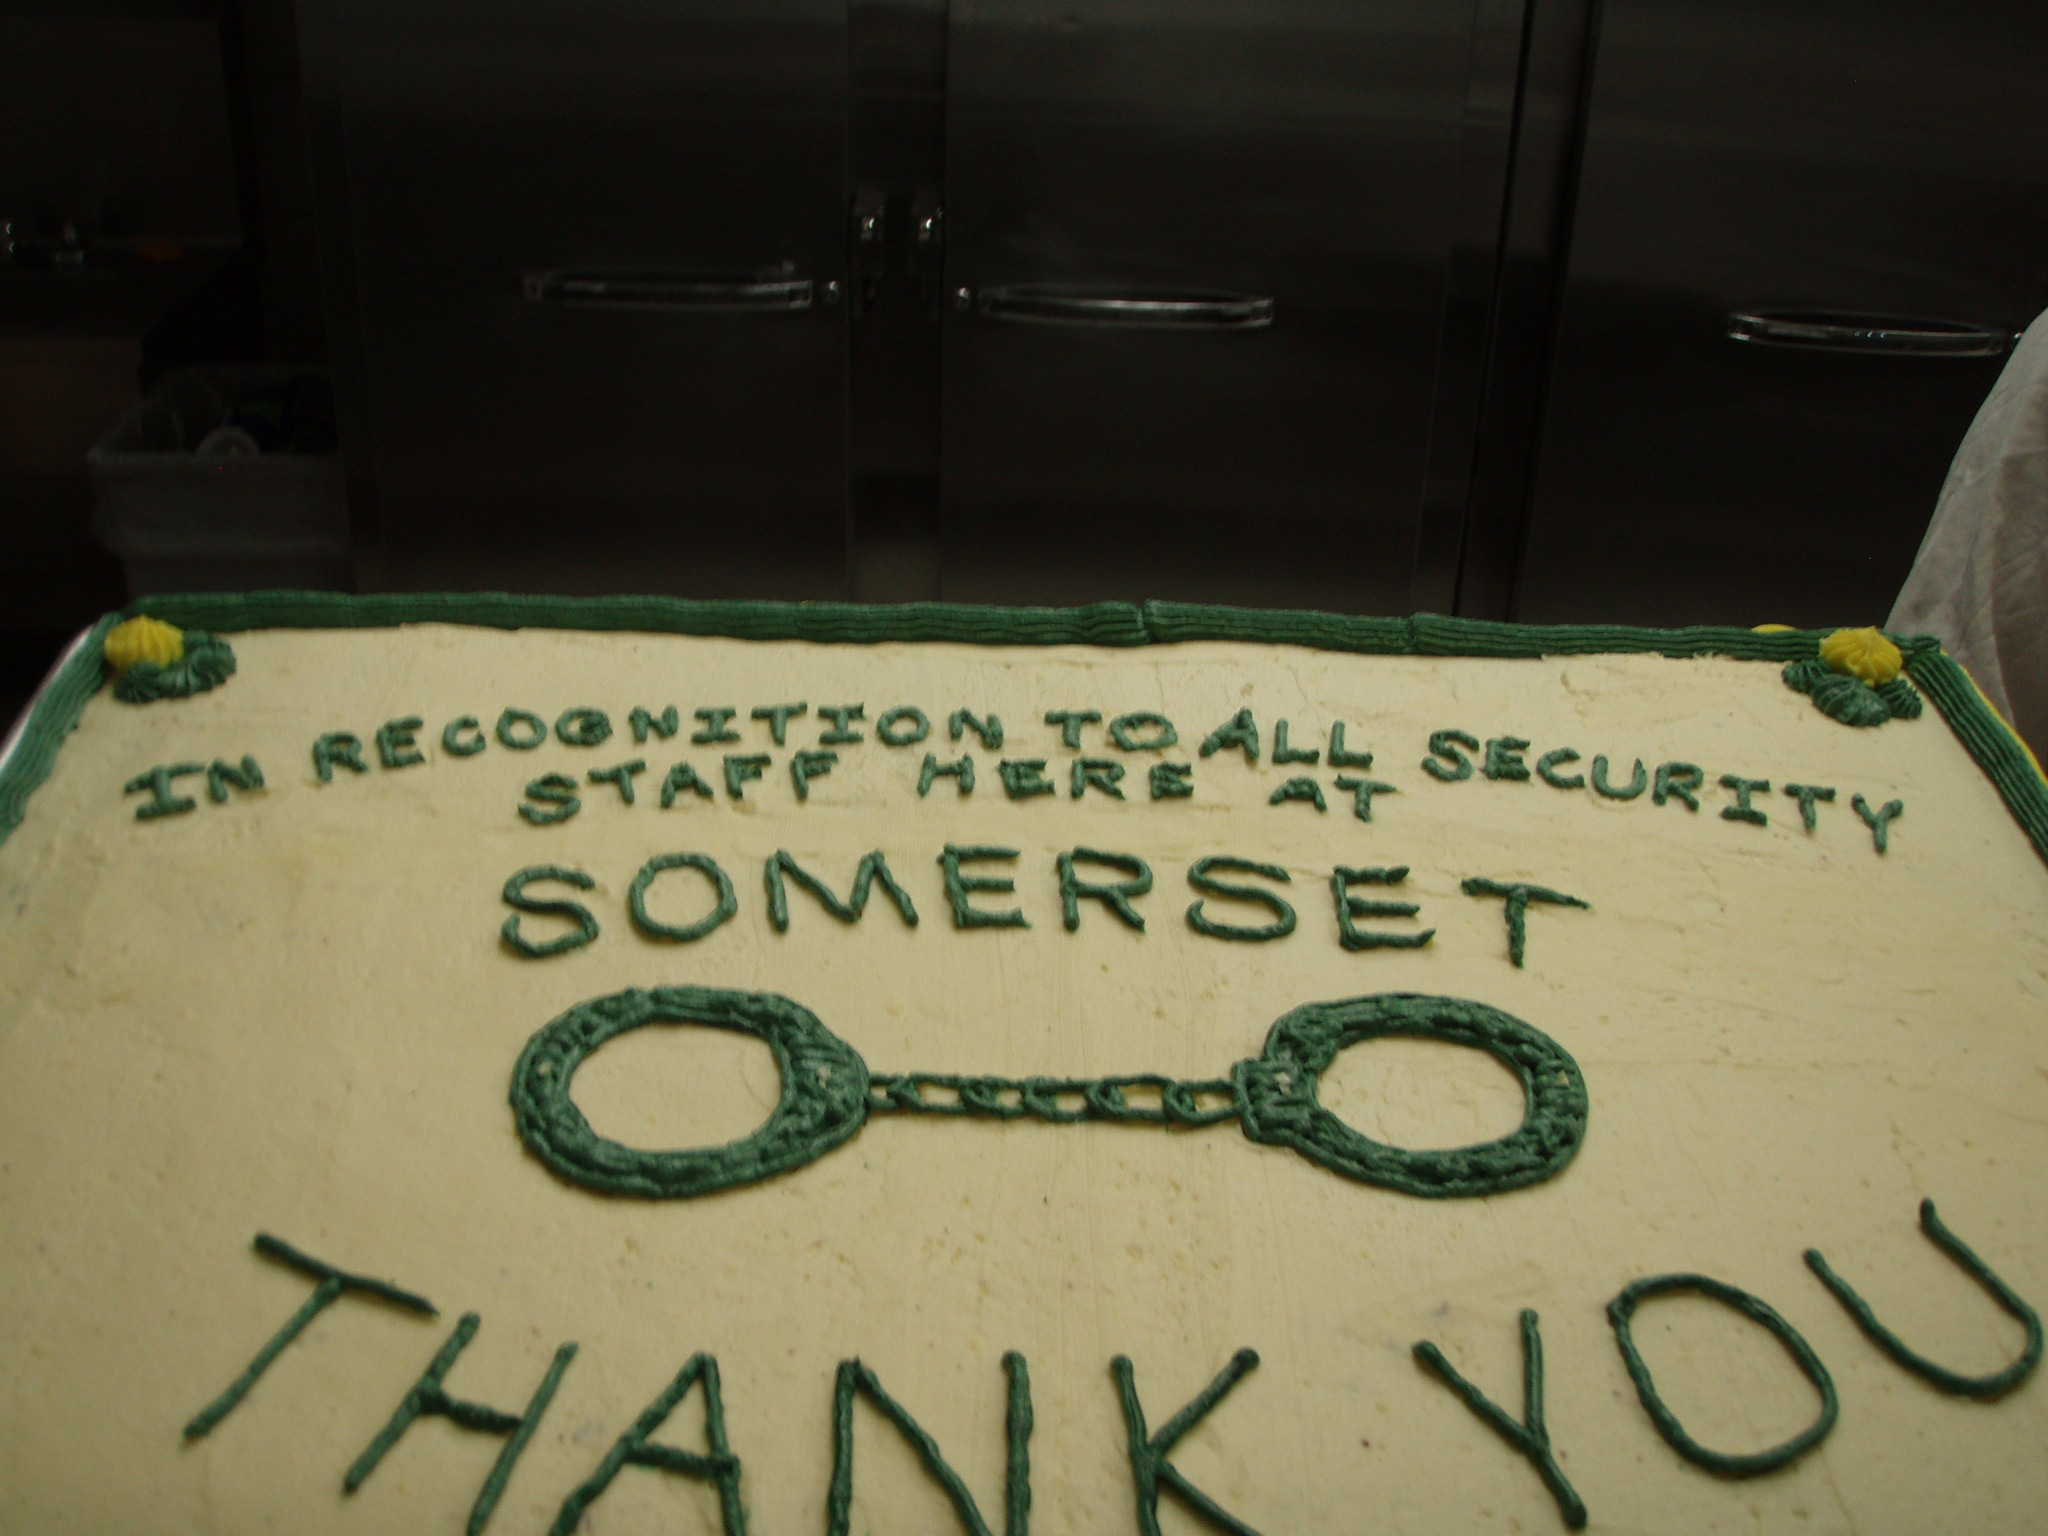 A cake honoring SCI Somerset's security staff